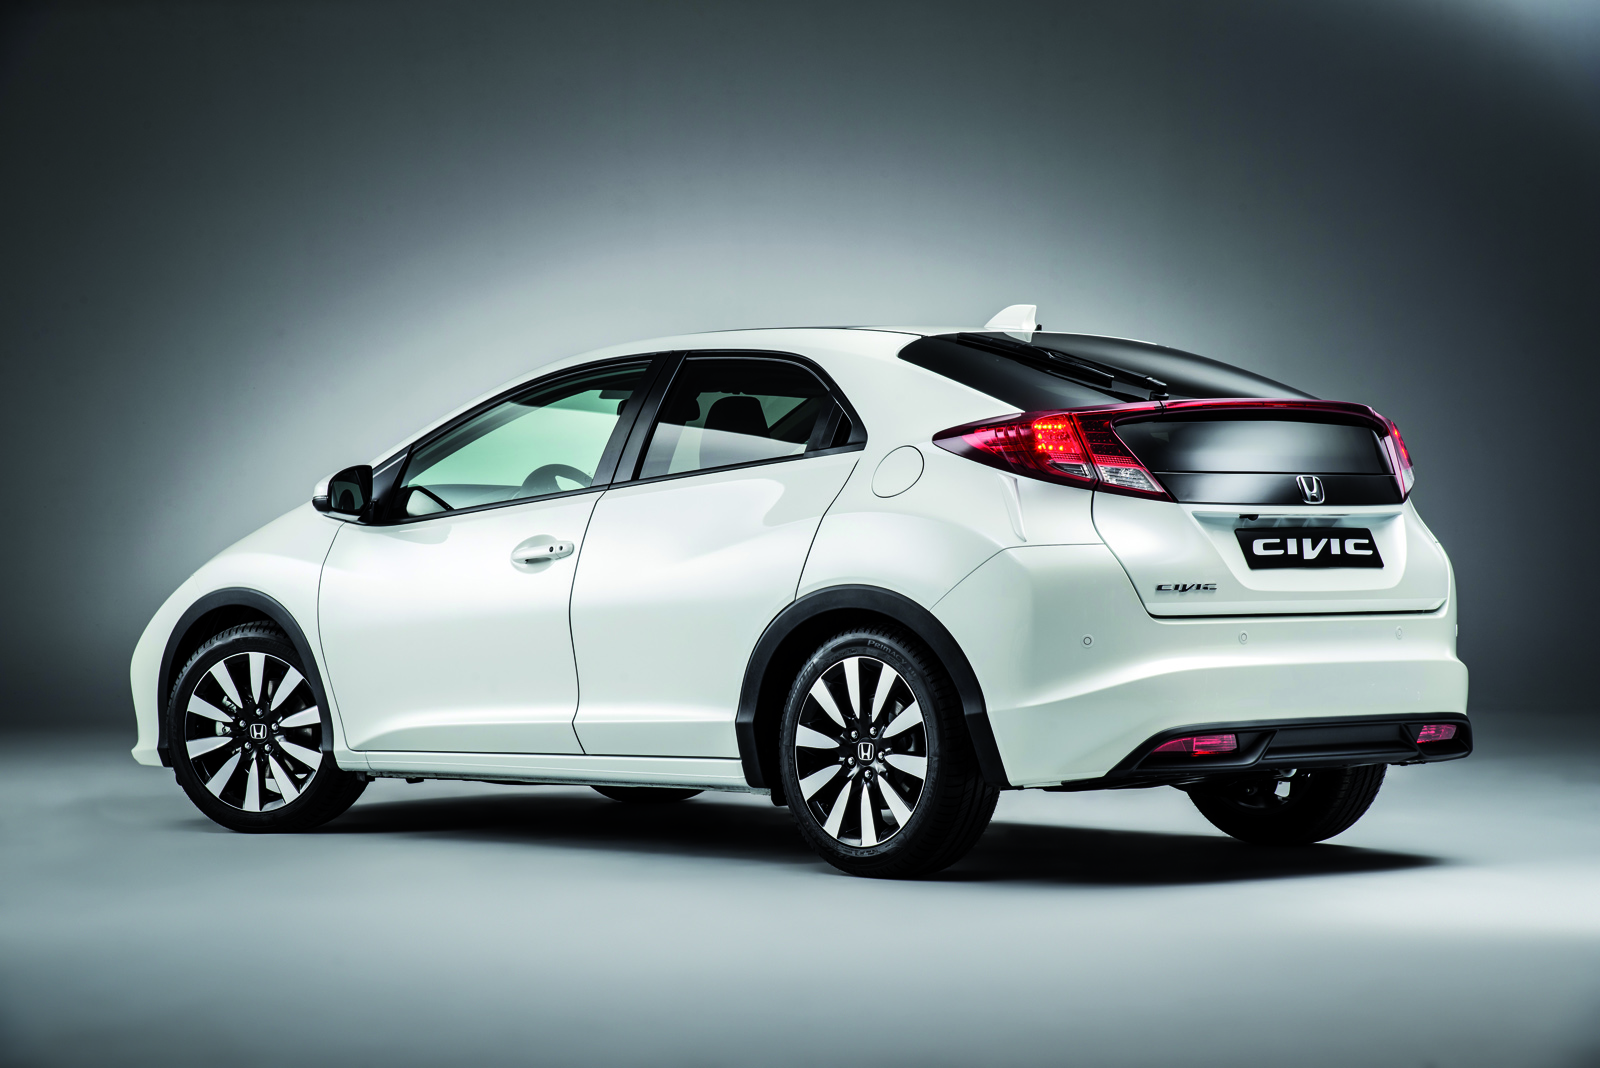 honda civic 2014 puesta al d a y con el civic type r en camino. Black Bedroom Furniture Sets. Home Design Ideas